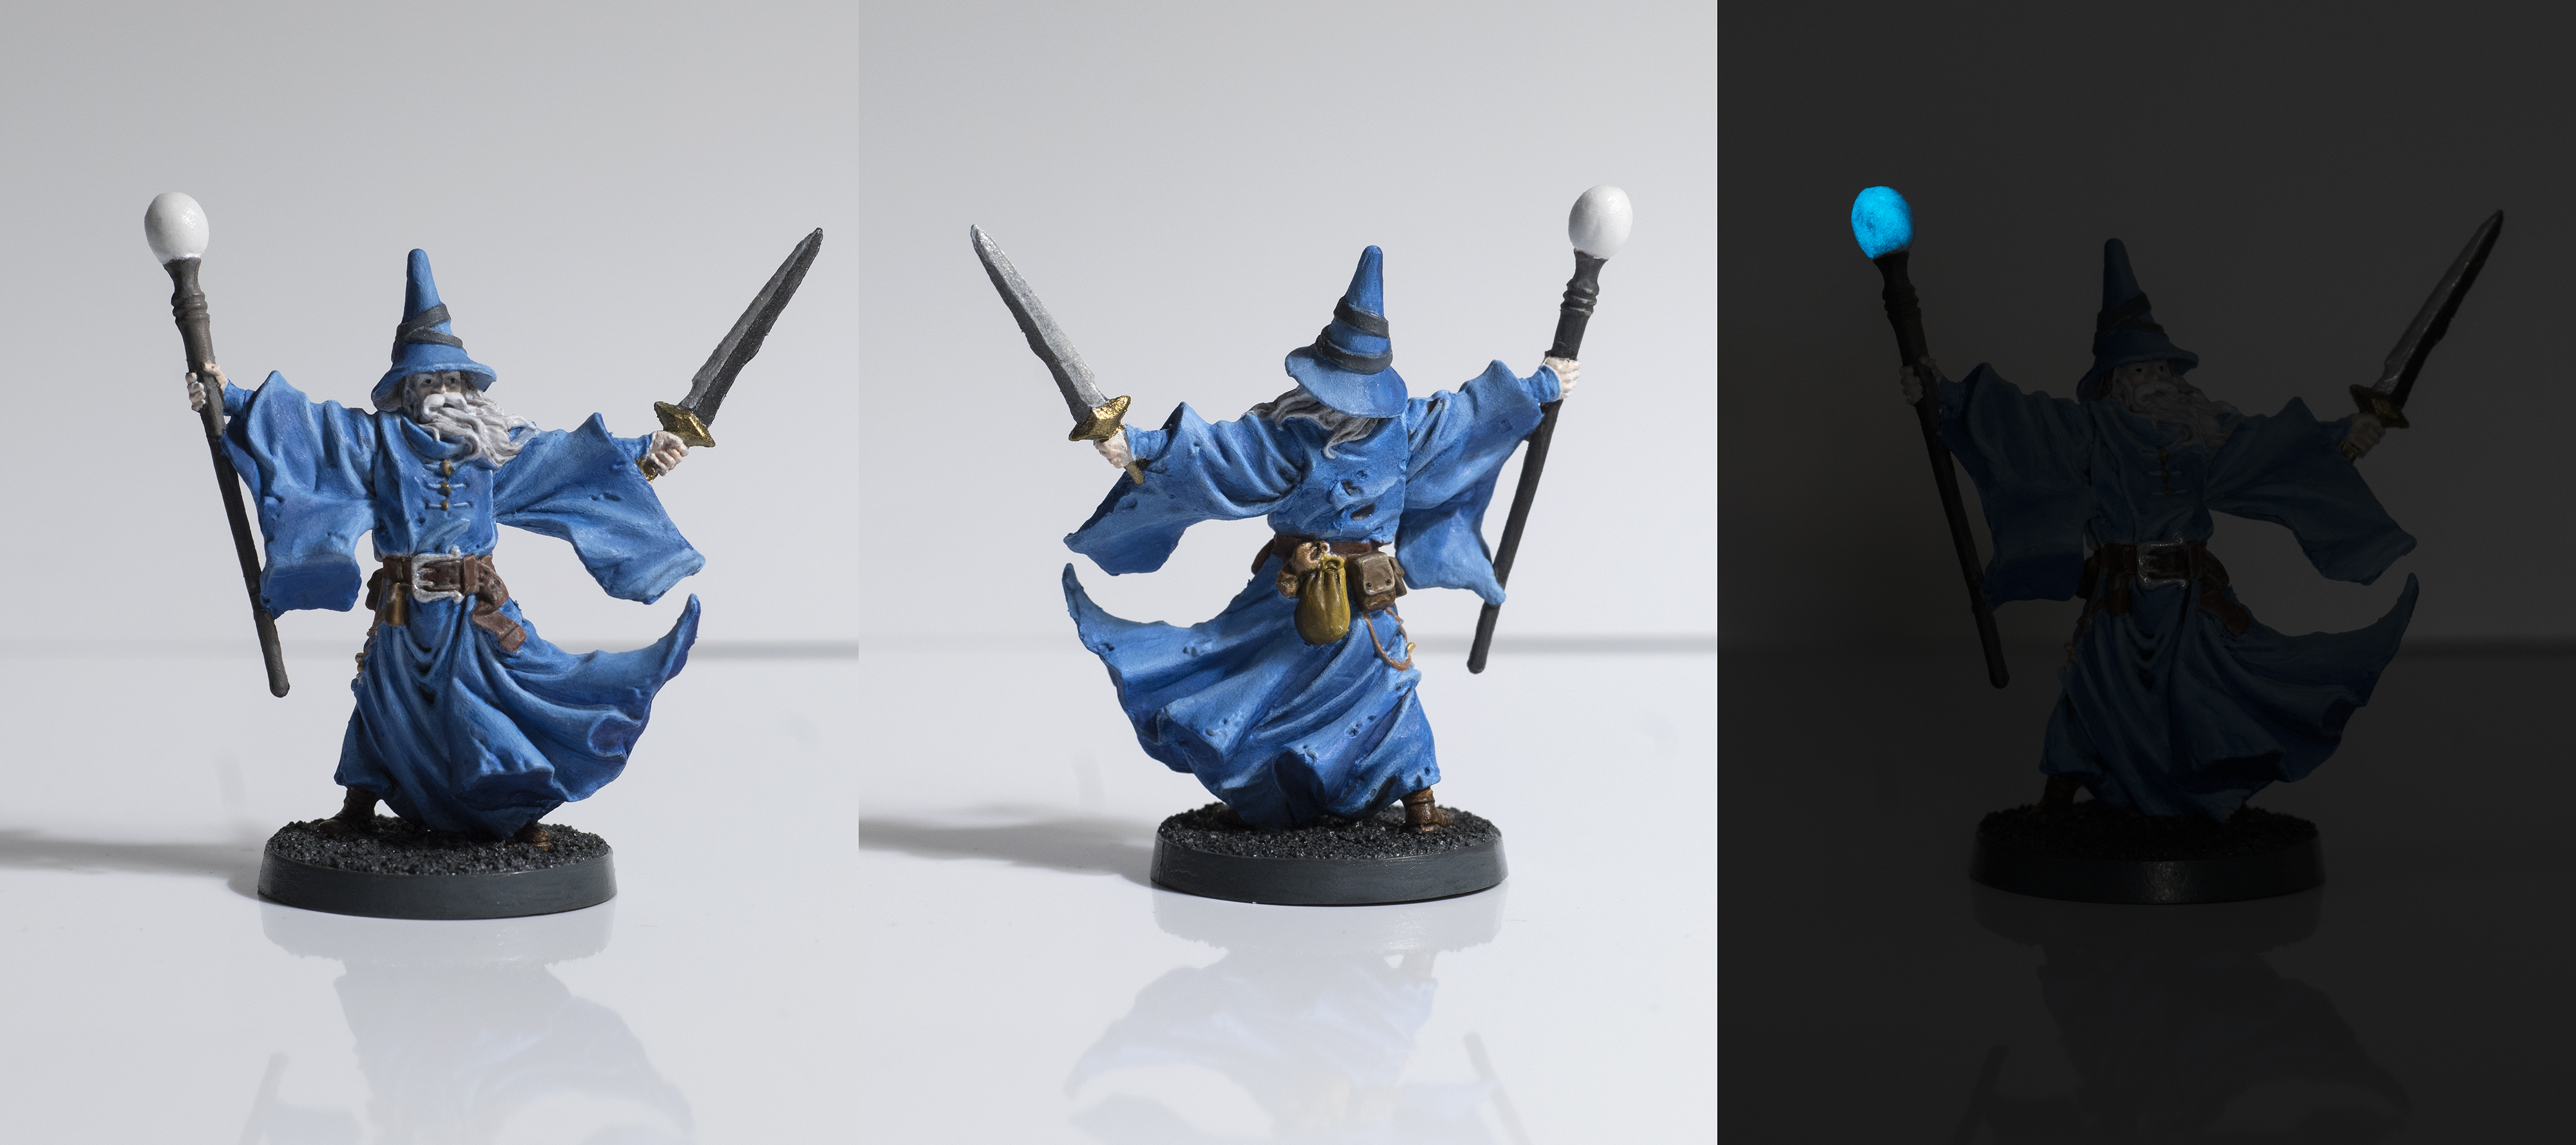 Elias the Battle Wizard, Massive Darkness